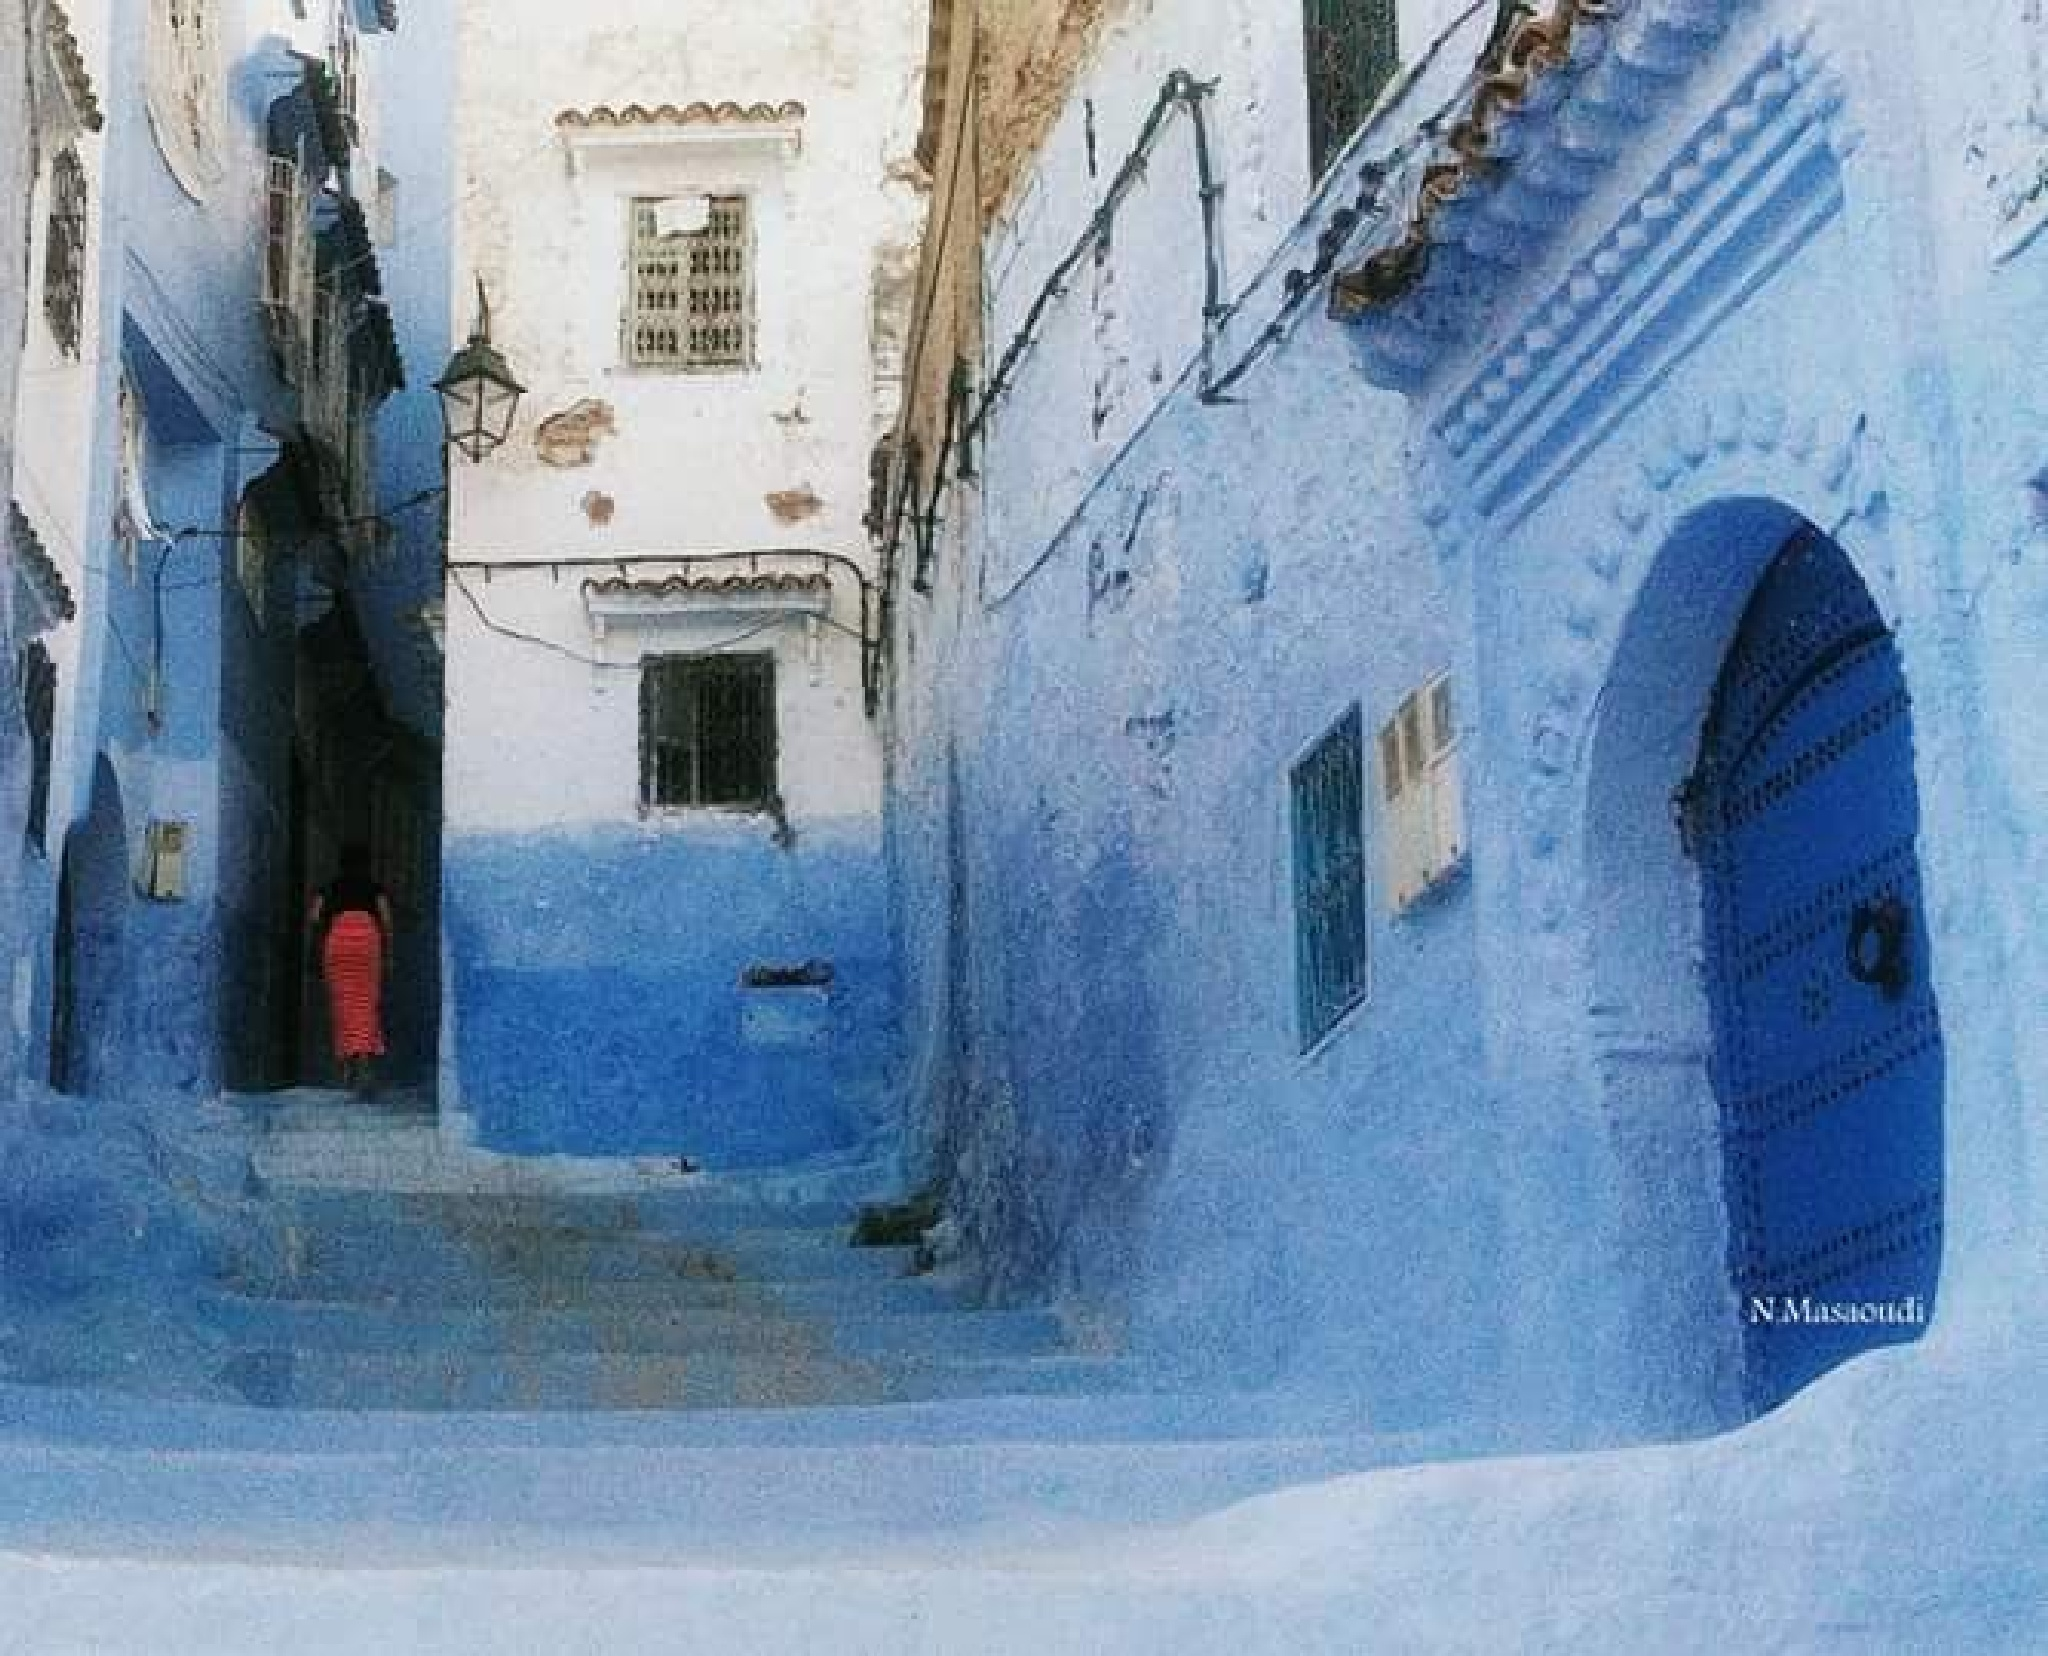 Blue art _ Chefchaouen. Morocco by Nor.dean photography